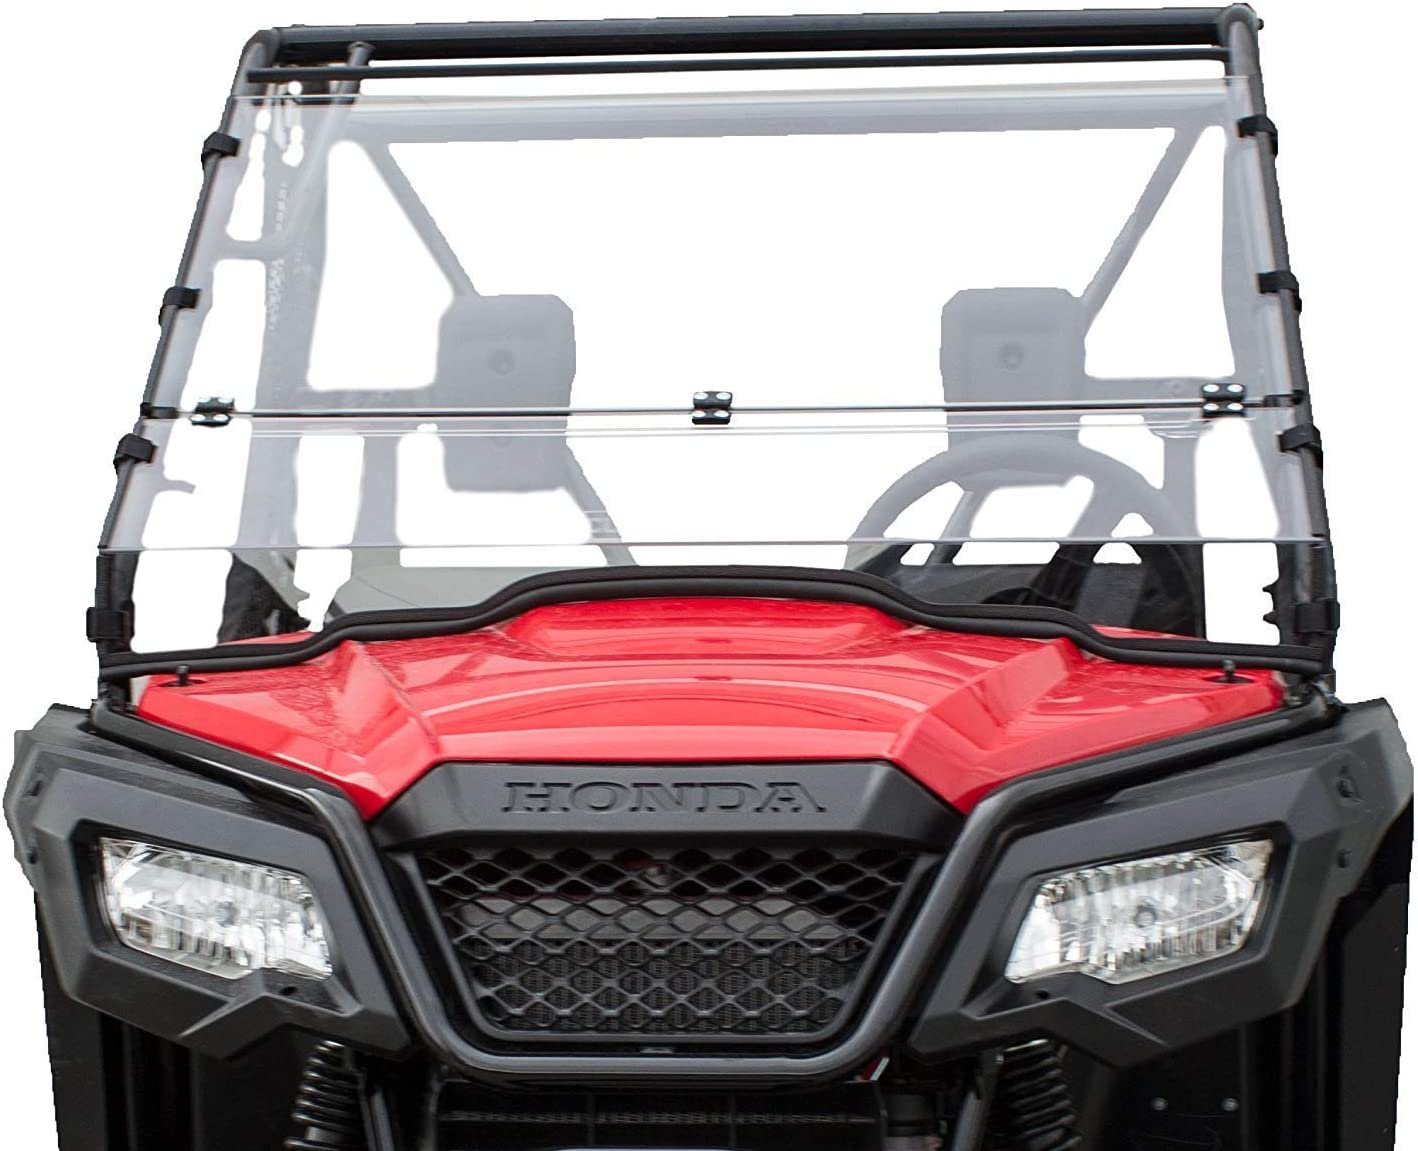 Clearly Tough Gorgeous Honda Pioneer 500 520 Full 2021 spring and summer new -S Folding Windshield -